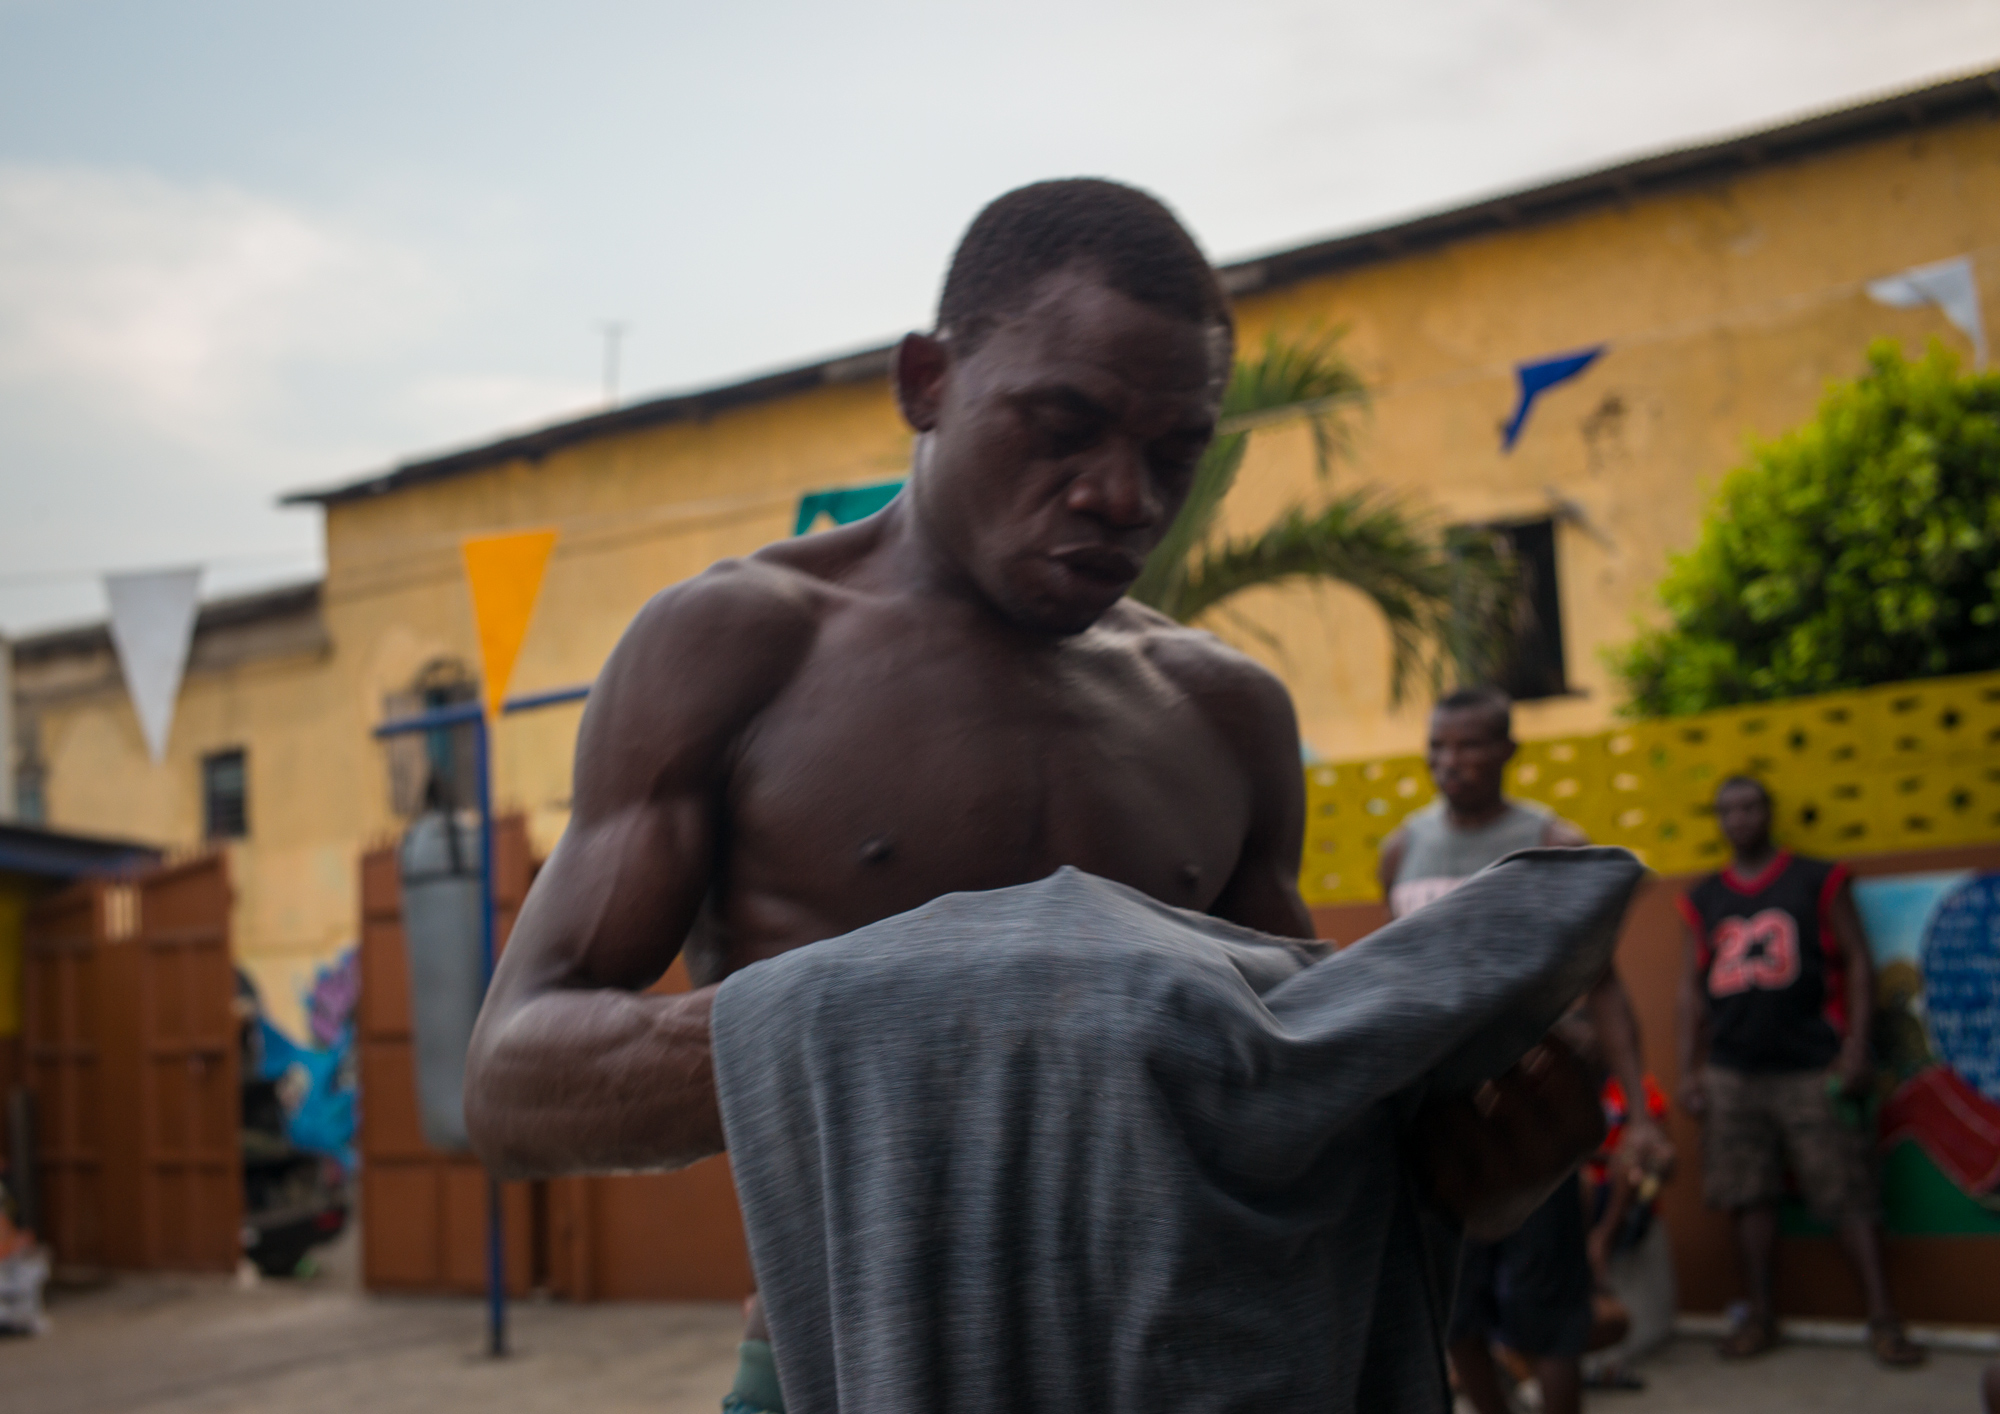 Joseph Lamptey, 36, training at the Black Panthers Gym for a fight that he won on December 26th, 2018 - James Town